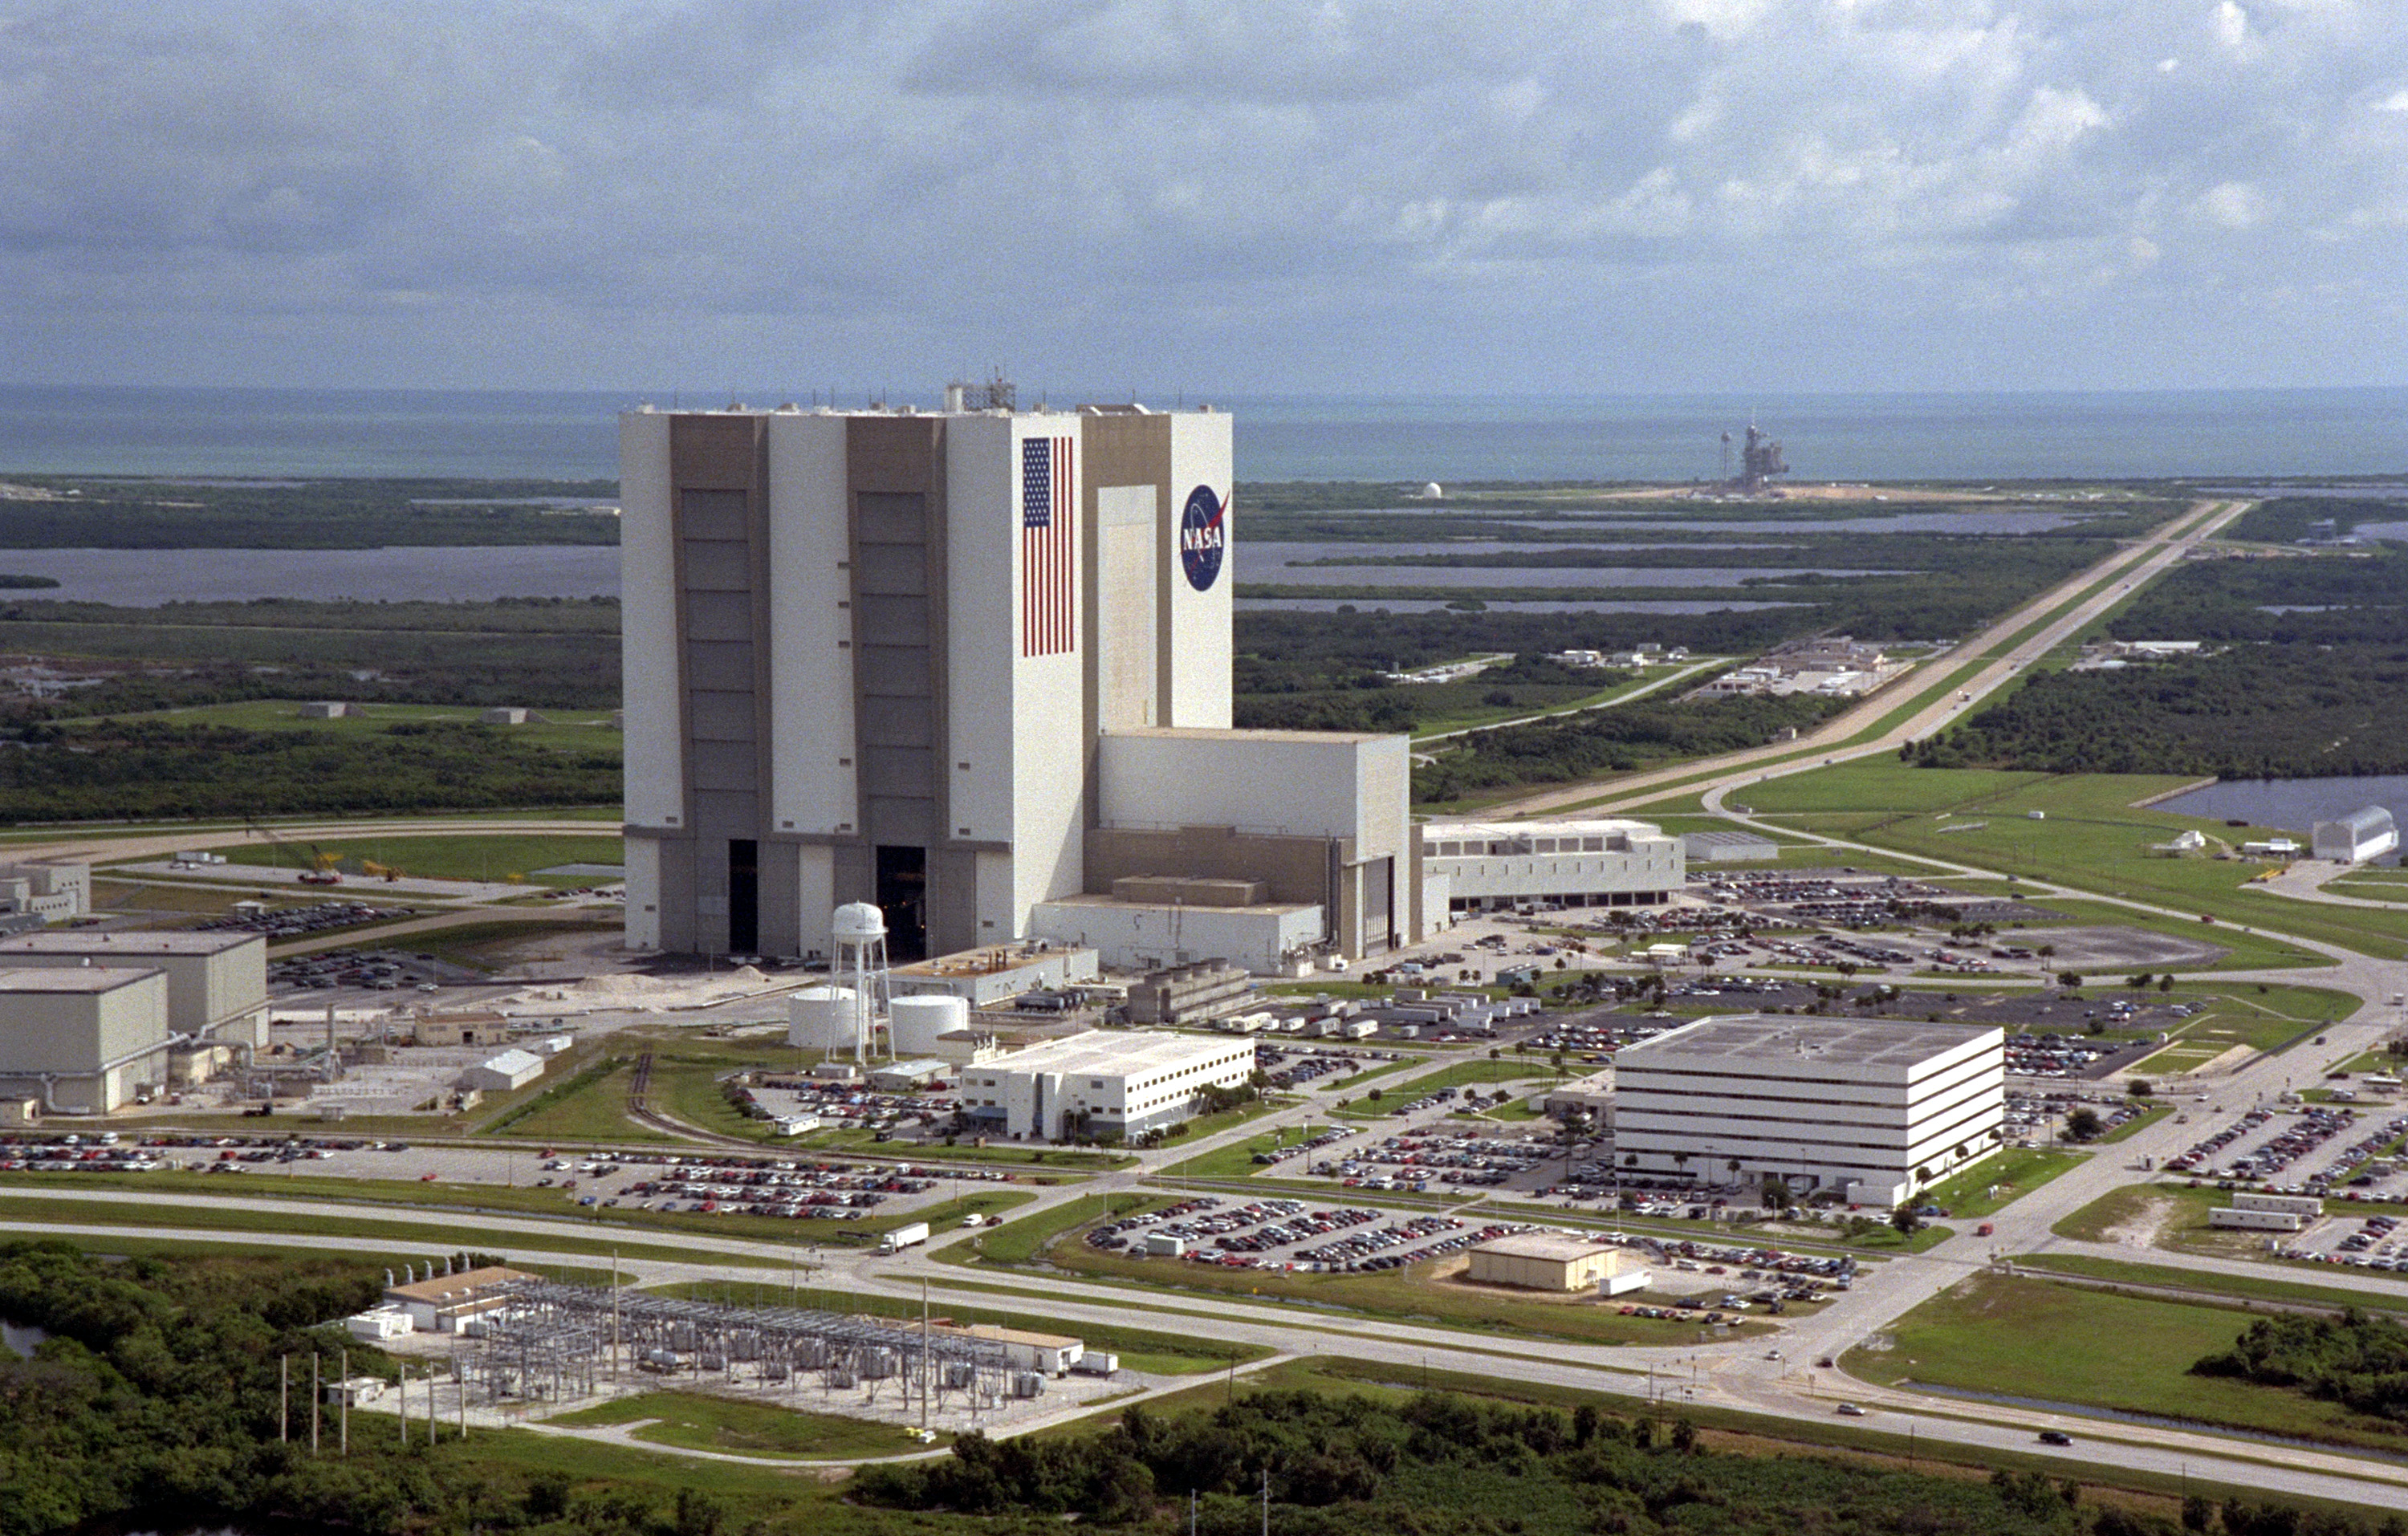 Vehicle Assembly Building Wikipedia - Nasa museums in usa